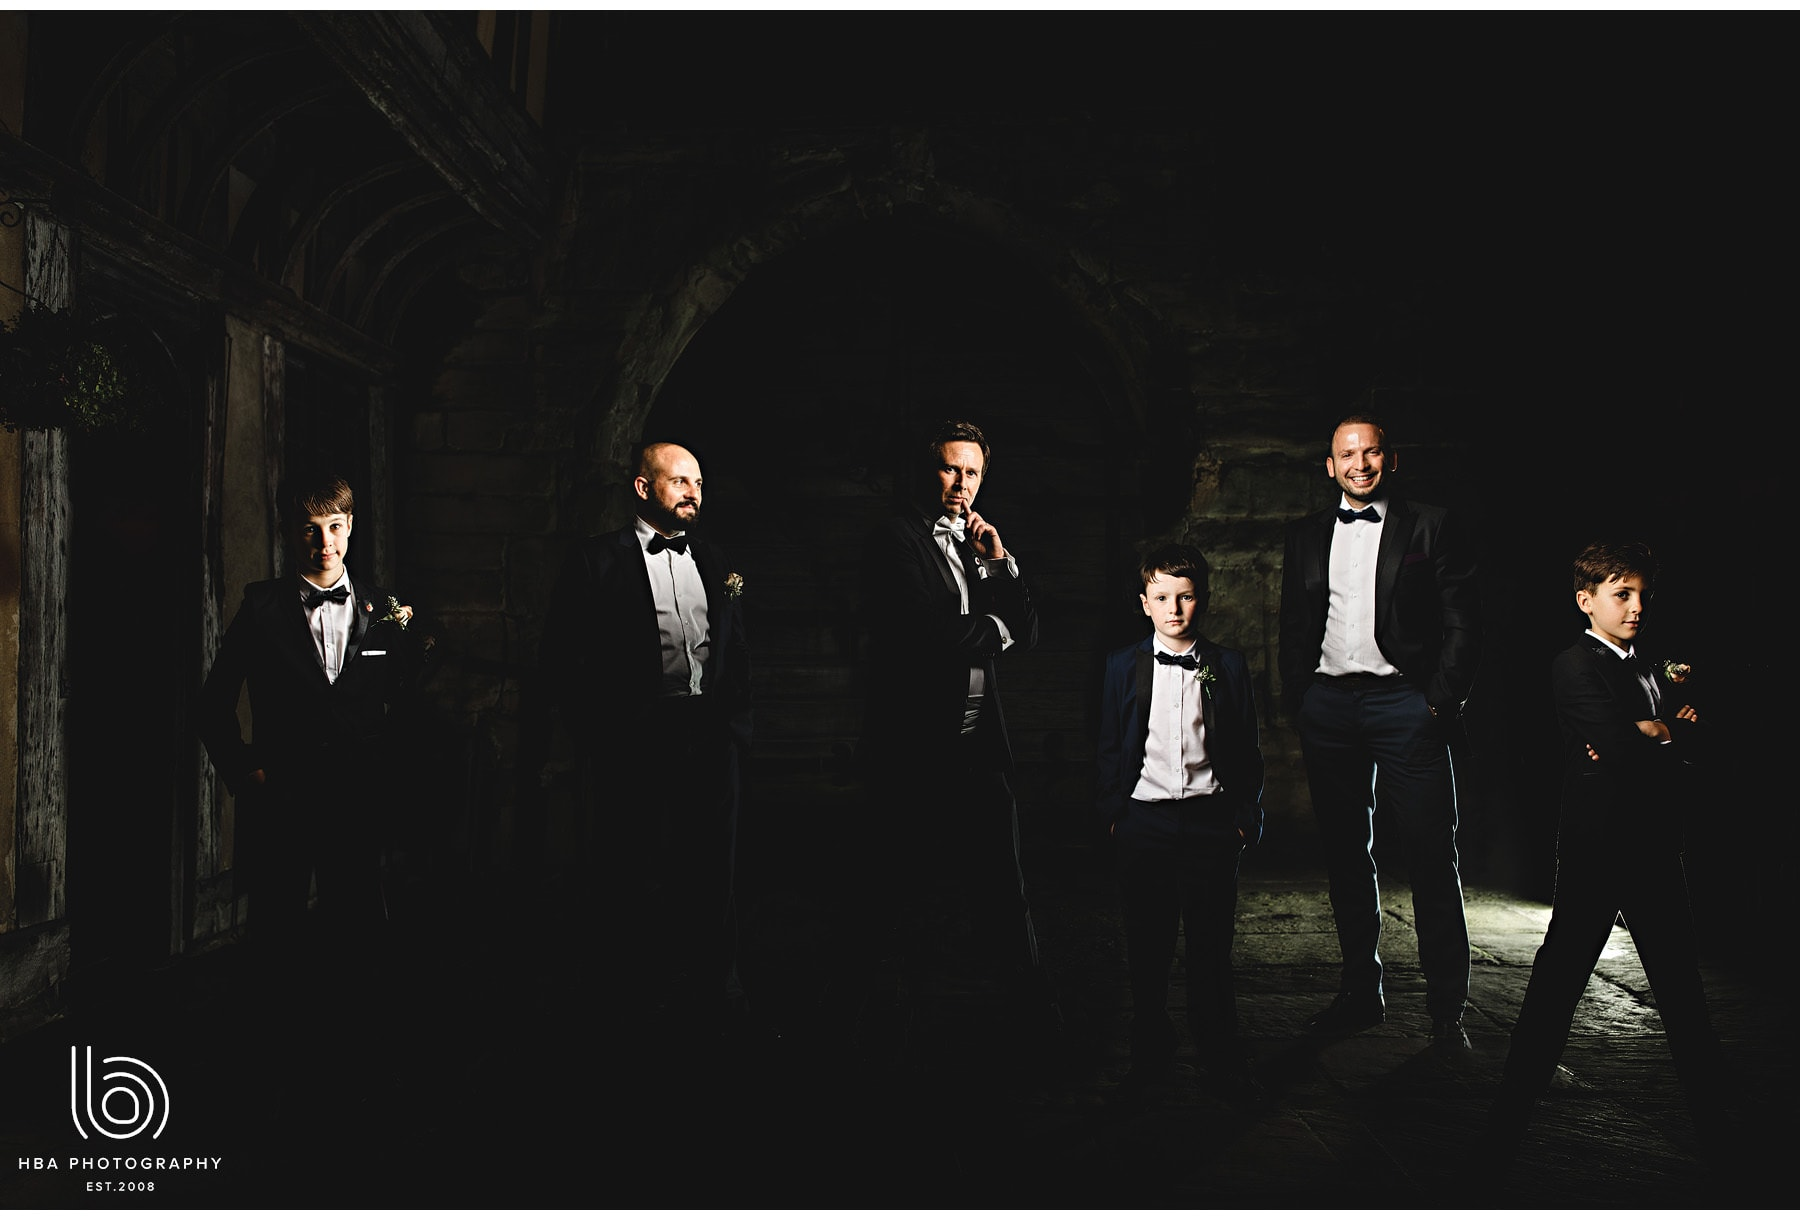 the groom and his groomsmen outside the venue